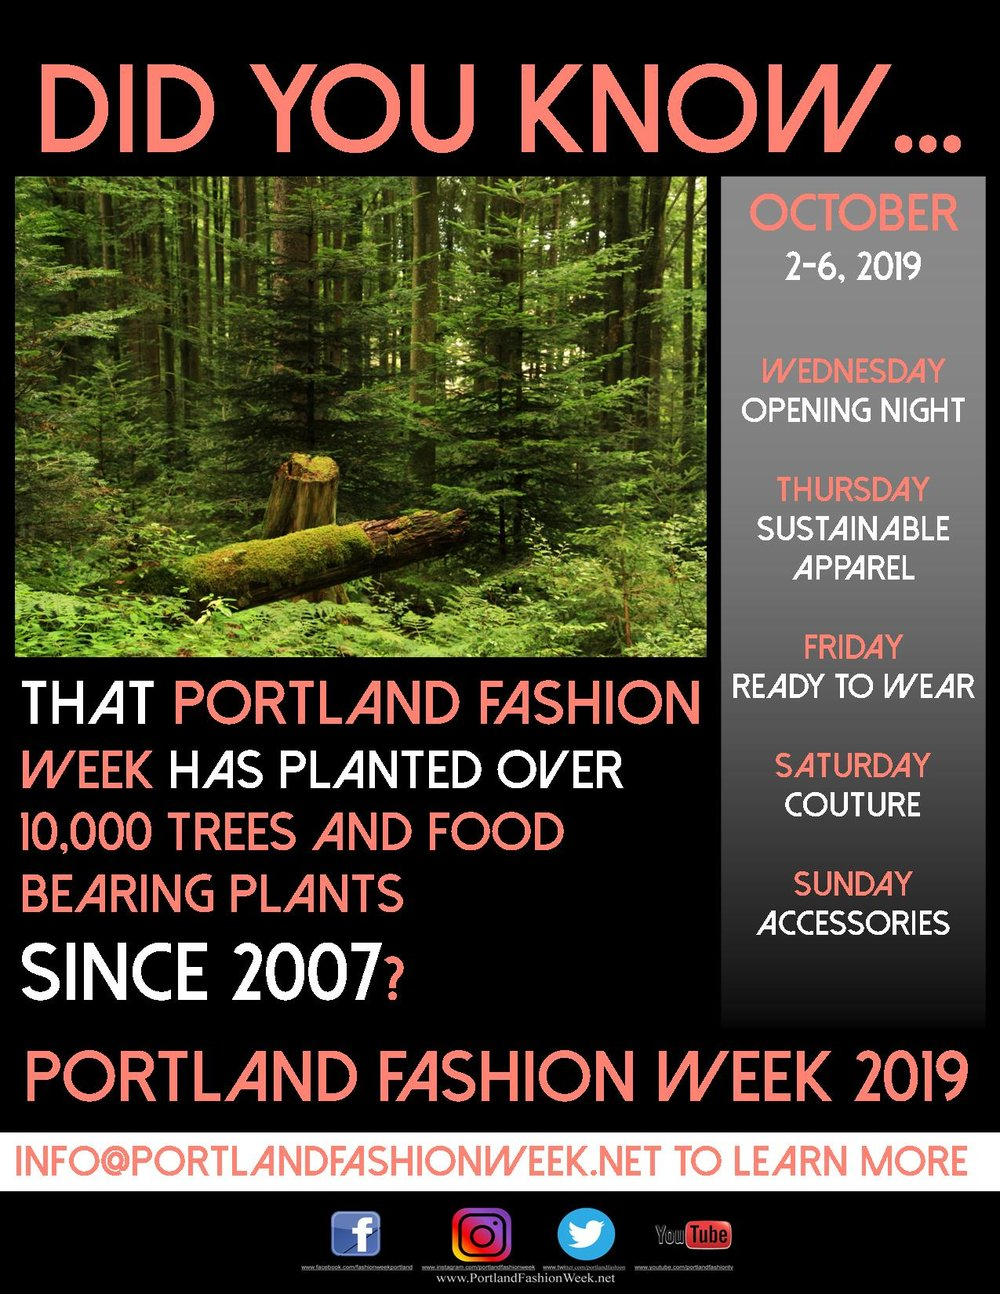 Join Portland Fashion Week! - All hands on deck for Spring cleaning just in time for the inaugural Gresham Lilac Run.Join PFW and fellow volunteers at Main City Park as we clean up parts of the Spring Water, Saddle Butte and Butler Creek Trails.Meet up 10:00 am on Saturday, April 6 at the big red barn in Main City park for some hot coffee and a brief information session.Trash bags, gloves and trash pickers will be provided.For questions or to RSVP, please email Sasha.Konell@GreshamOregon.gov by March 30, 2019.